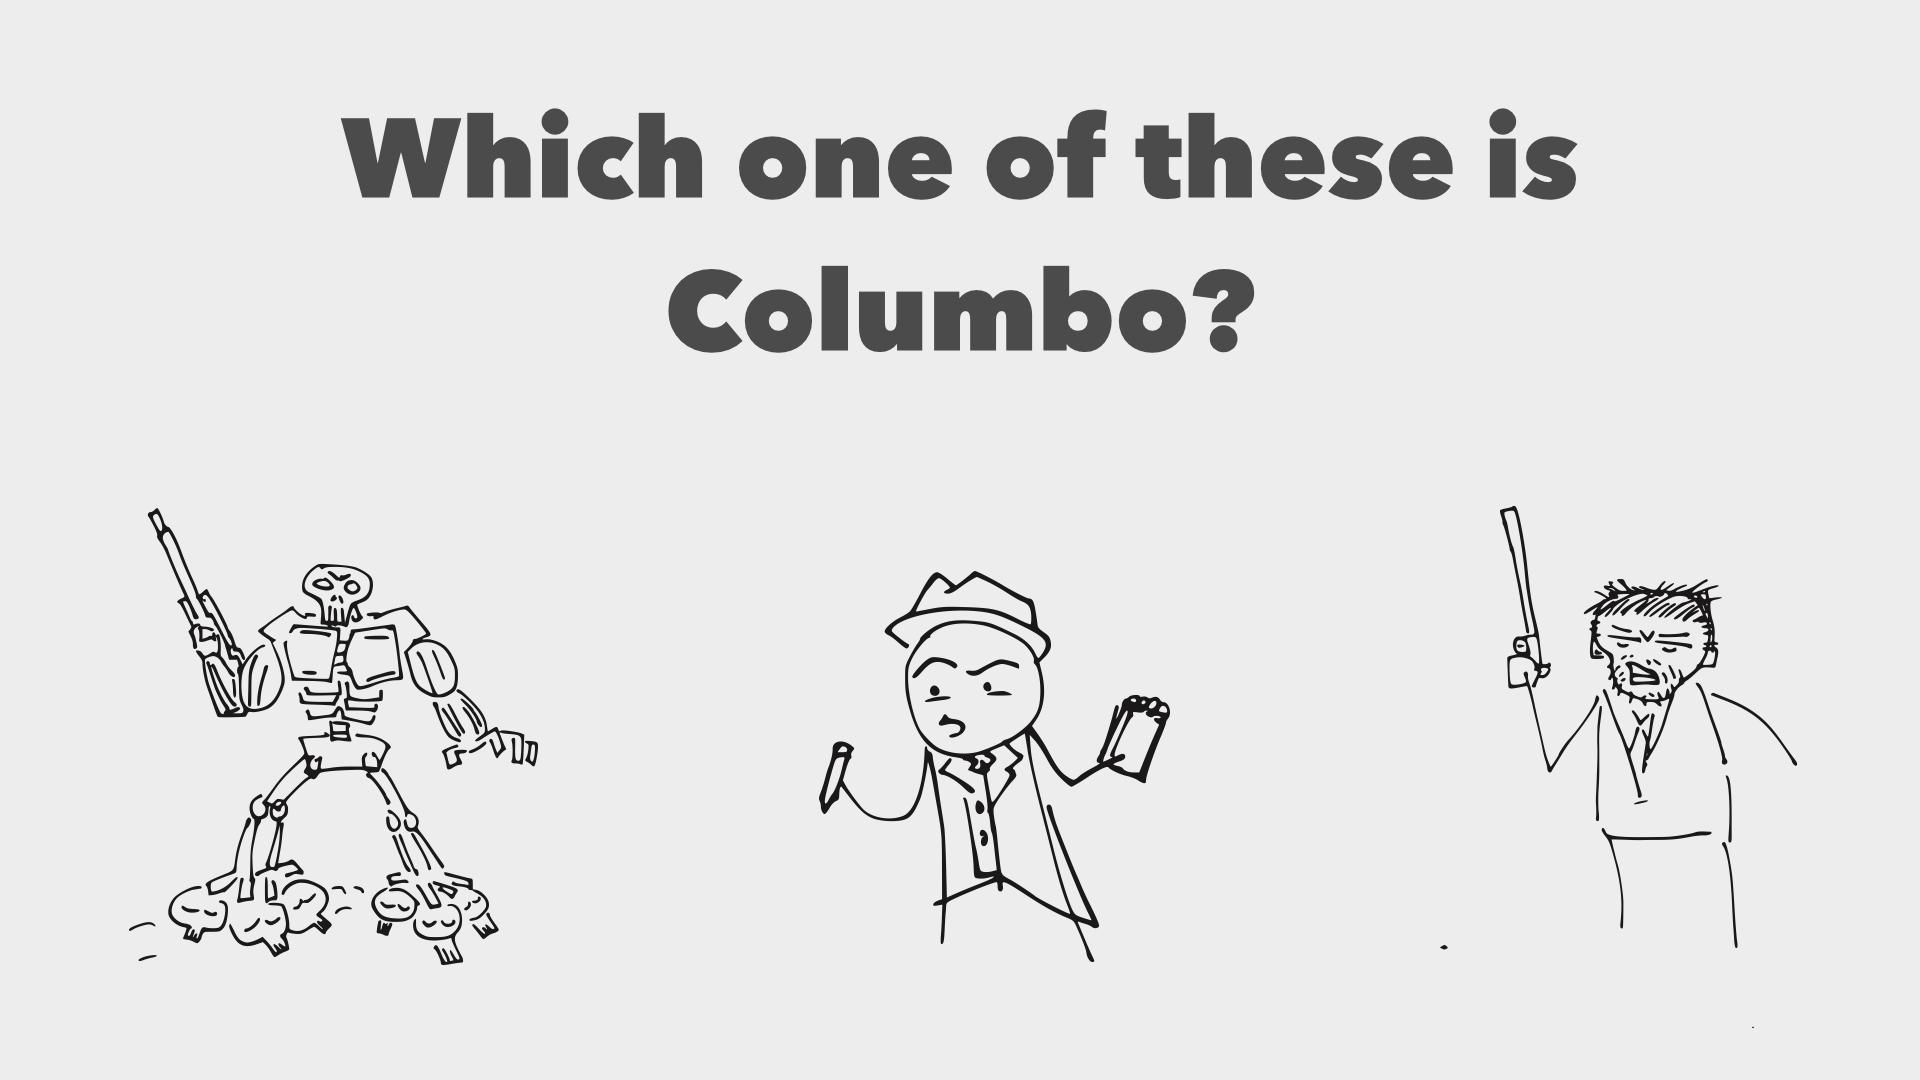 Which one is Columbo?